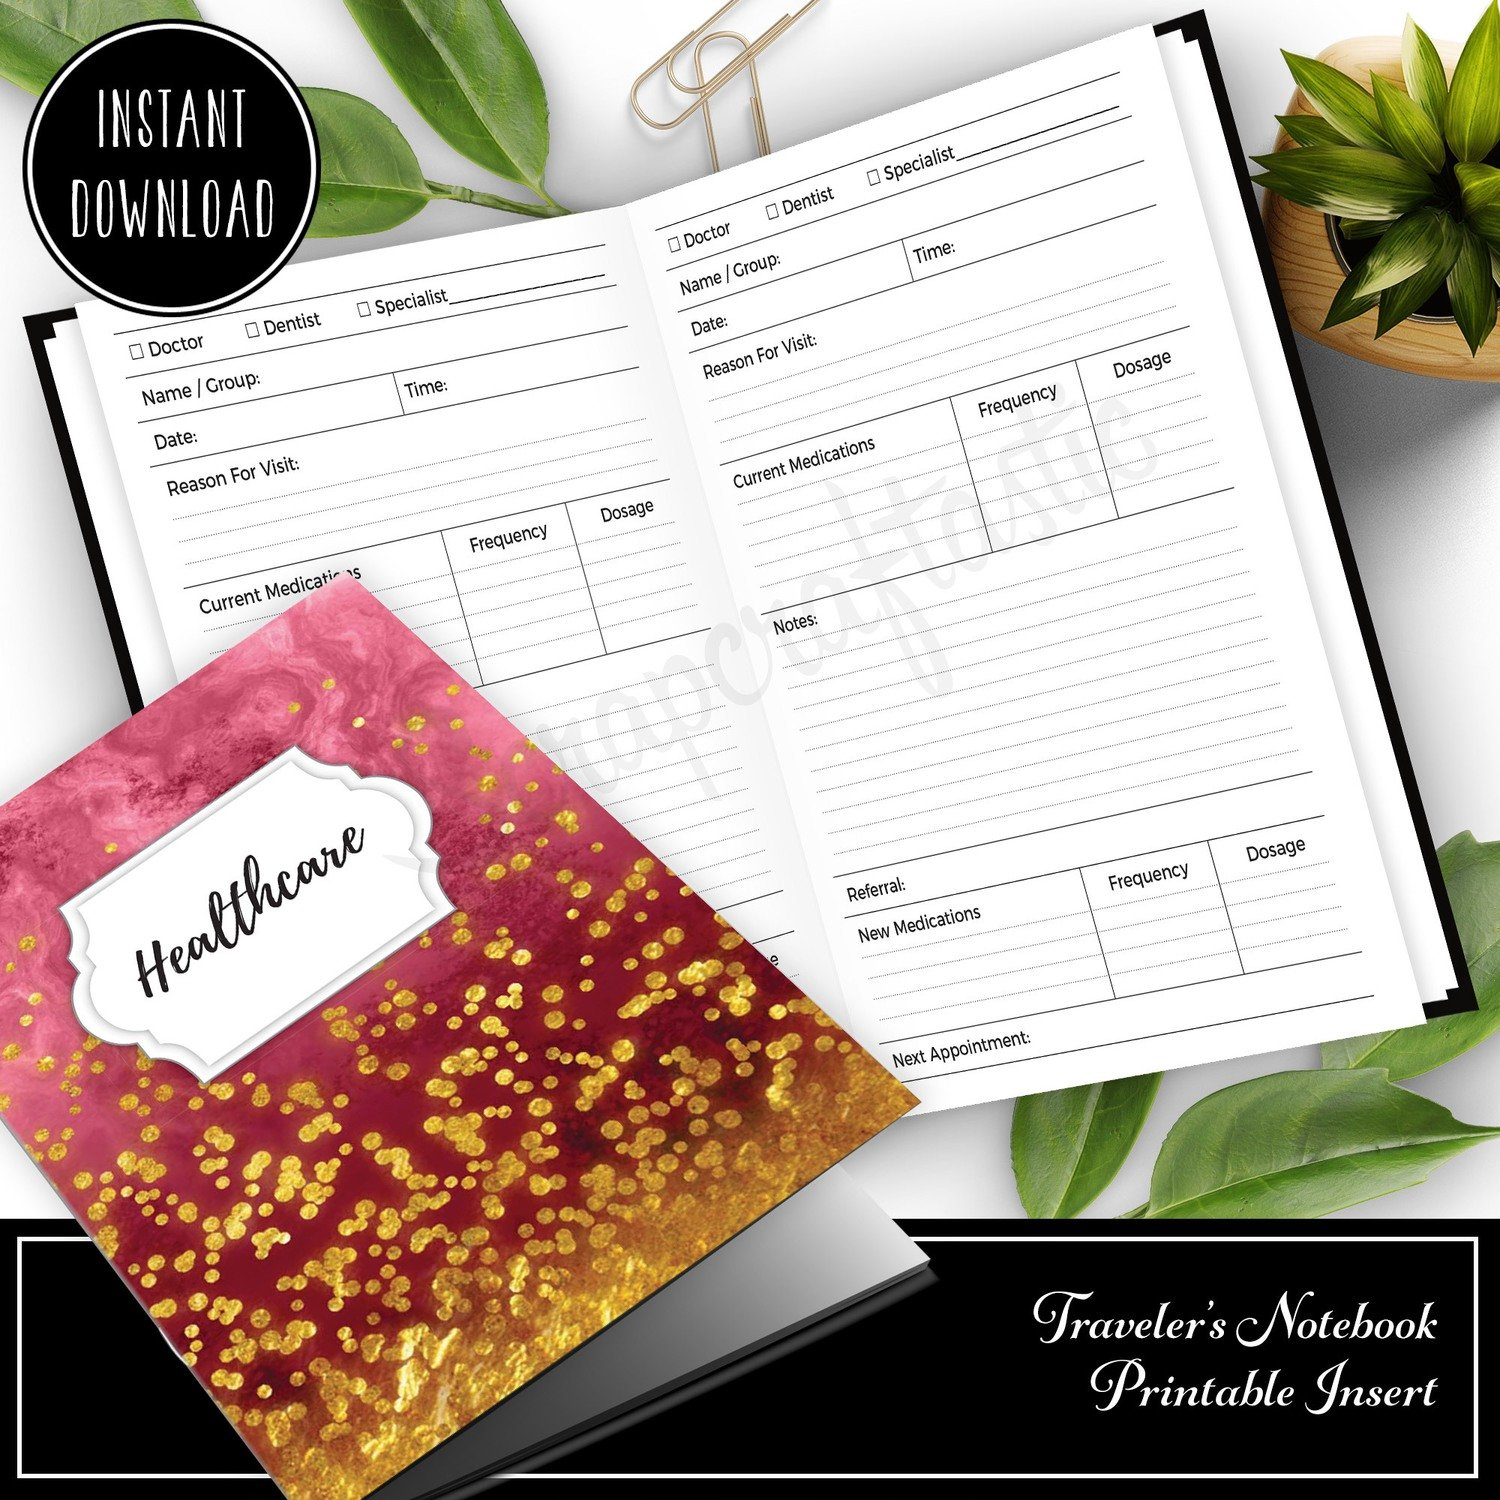 PASSPORT TN - Healthcare Visit Log Traveler's Notebook Printable Insert